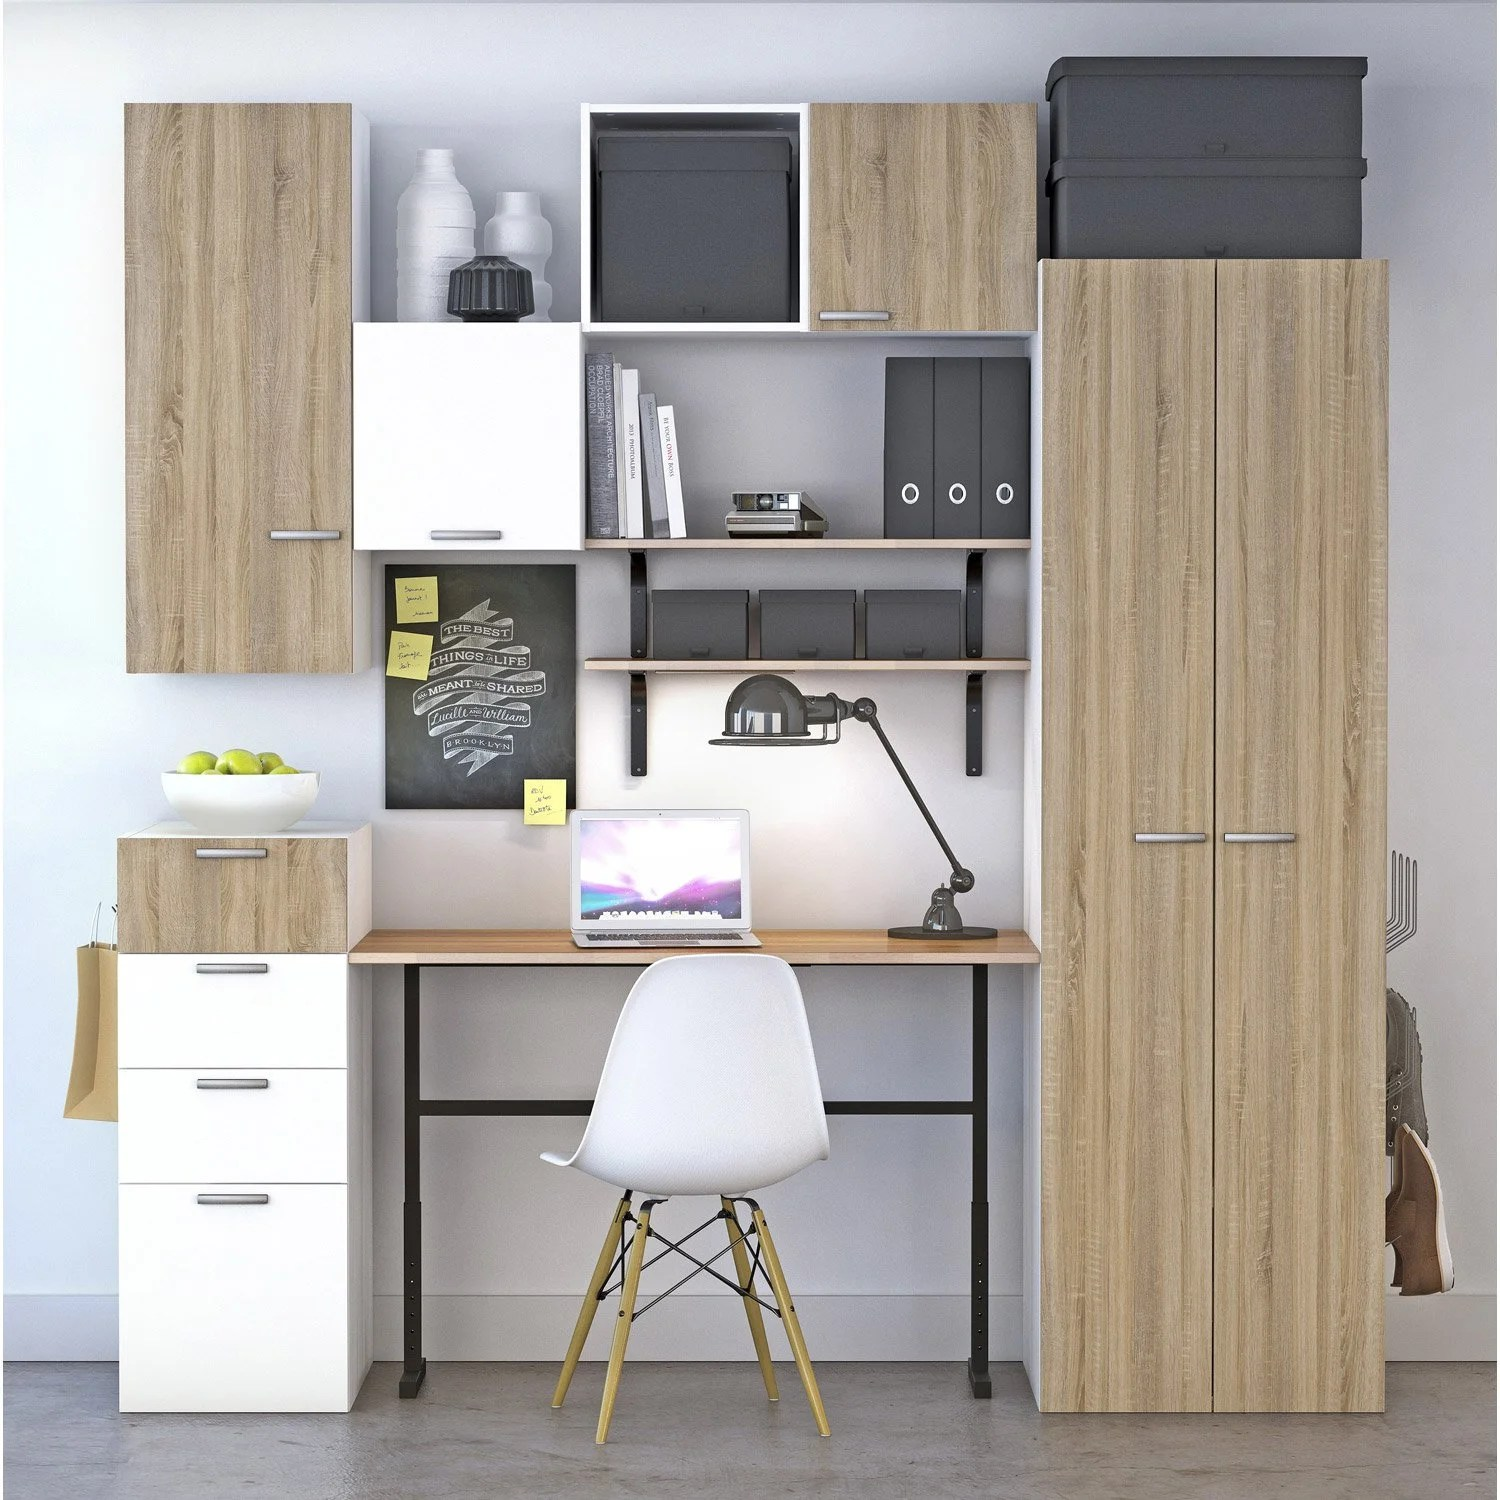 Leroy Merlin Spaceo Porte Bureau Spaceo Home Effet Chêne Leroy Merlin